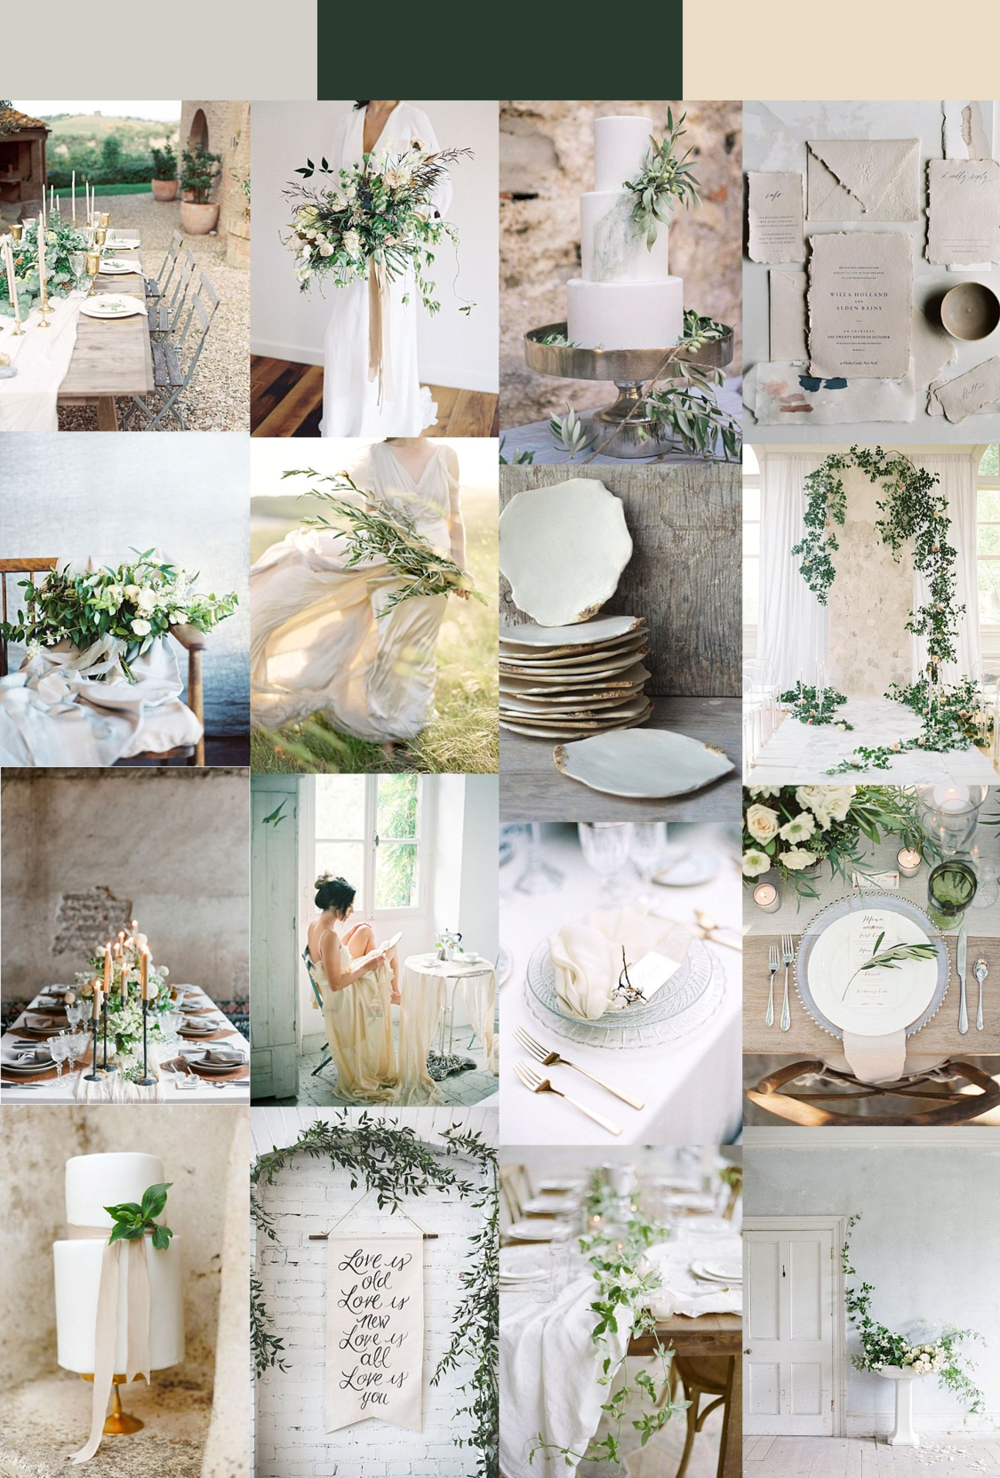 Photography in order:  Savan Photography  |  Jessica Lorren  |  Alexis Rose Photography  |  Idyll Paper  |  Michelle Boyd  |  Jose Villa  |  Etsy  |  Bonnie Sen Photography  |  Valentina Glidden  |  Darya Kamalova  |  Jon Cu  |  J Lane Photography  |  C  lare Graham  |  Your Wedding Project  |  Carmen Santorelli  |  Taylor & Porter